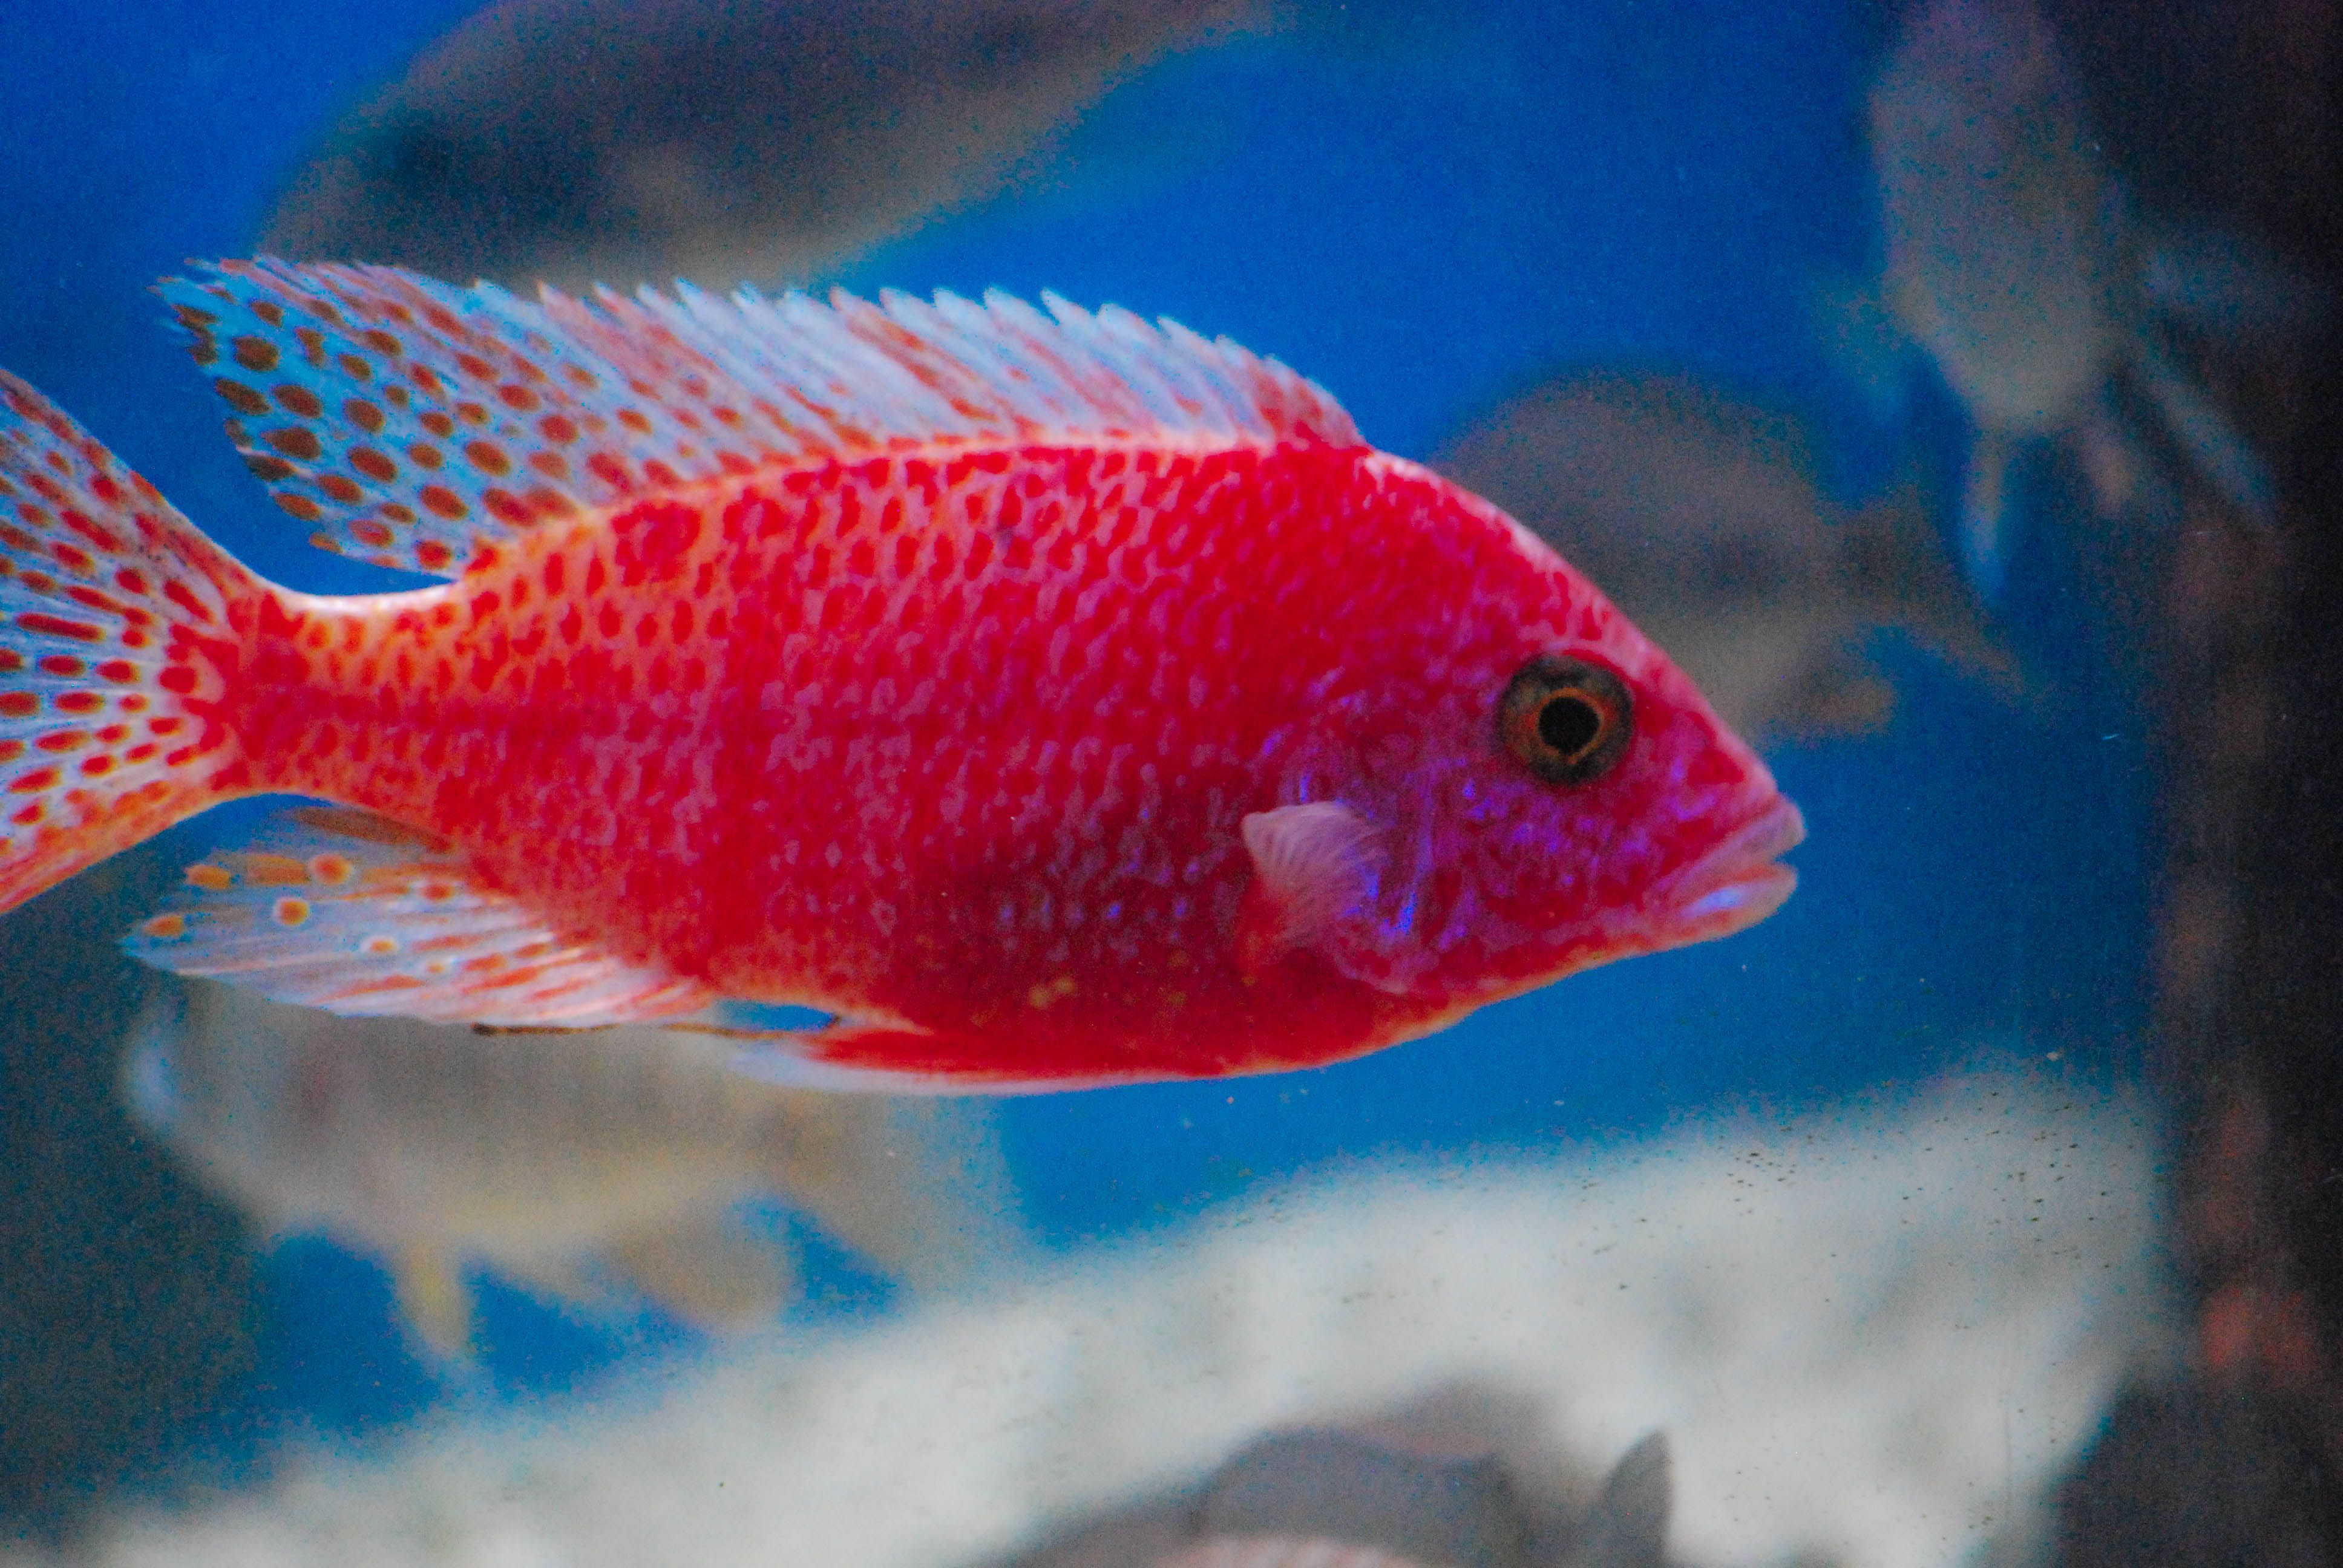 Strawberry peacock cichlid freshwater fish pinterest for Colorful freshwater fish for sale